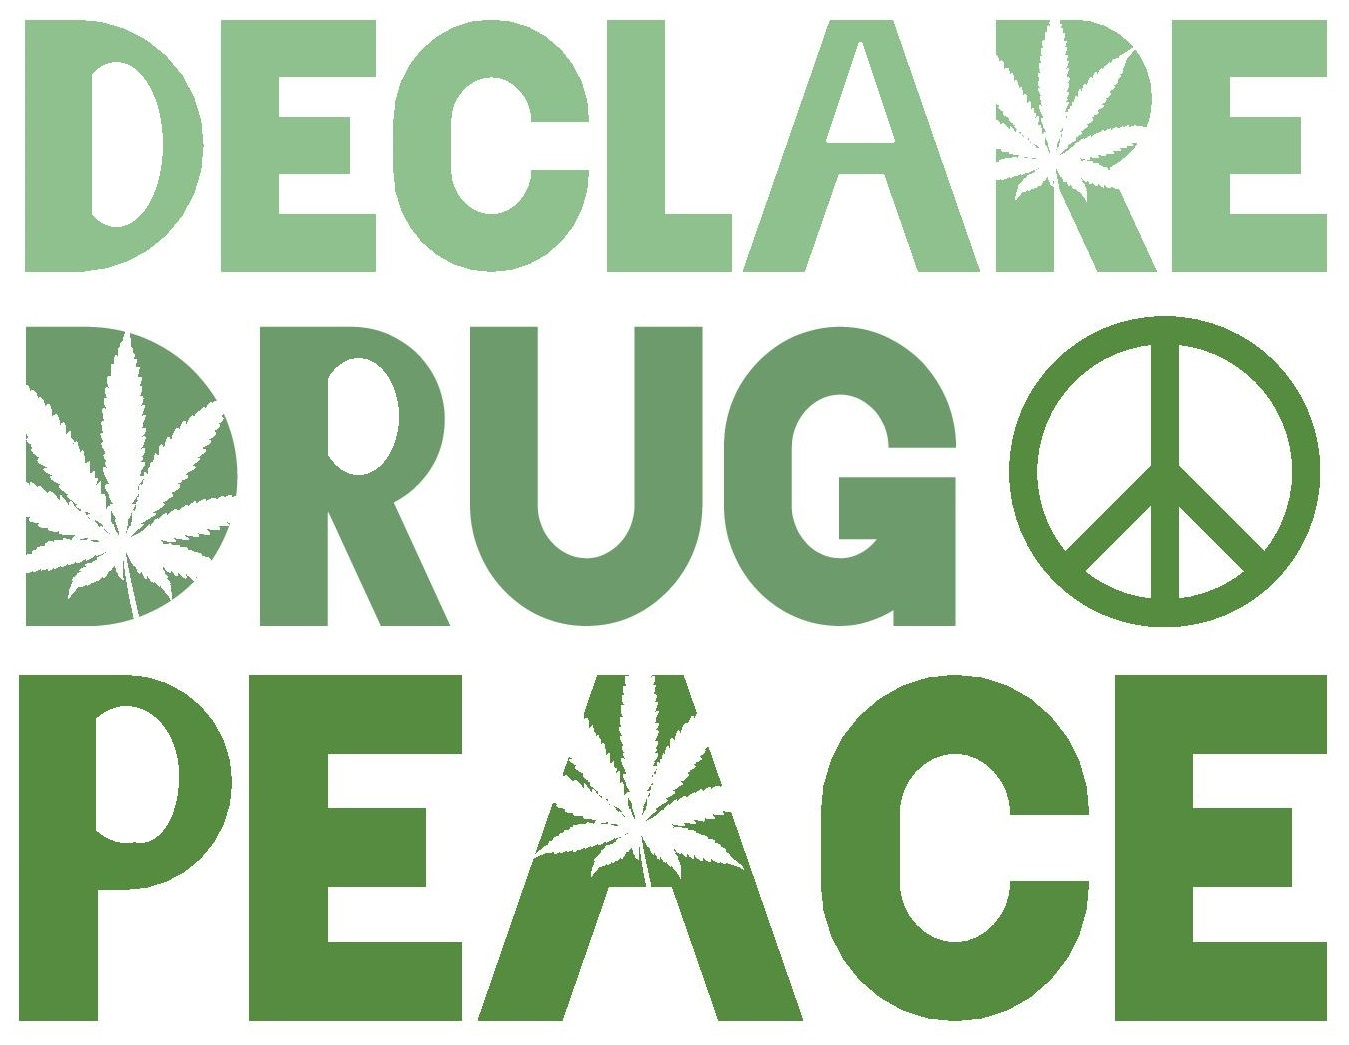 MMJ plac declare drug peace